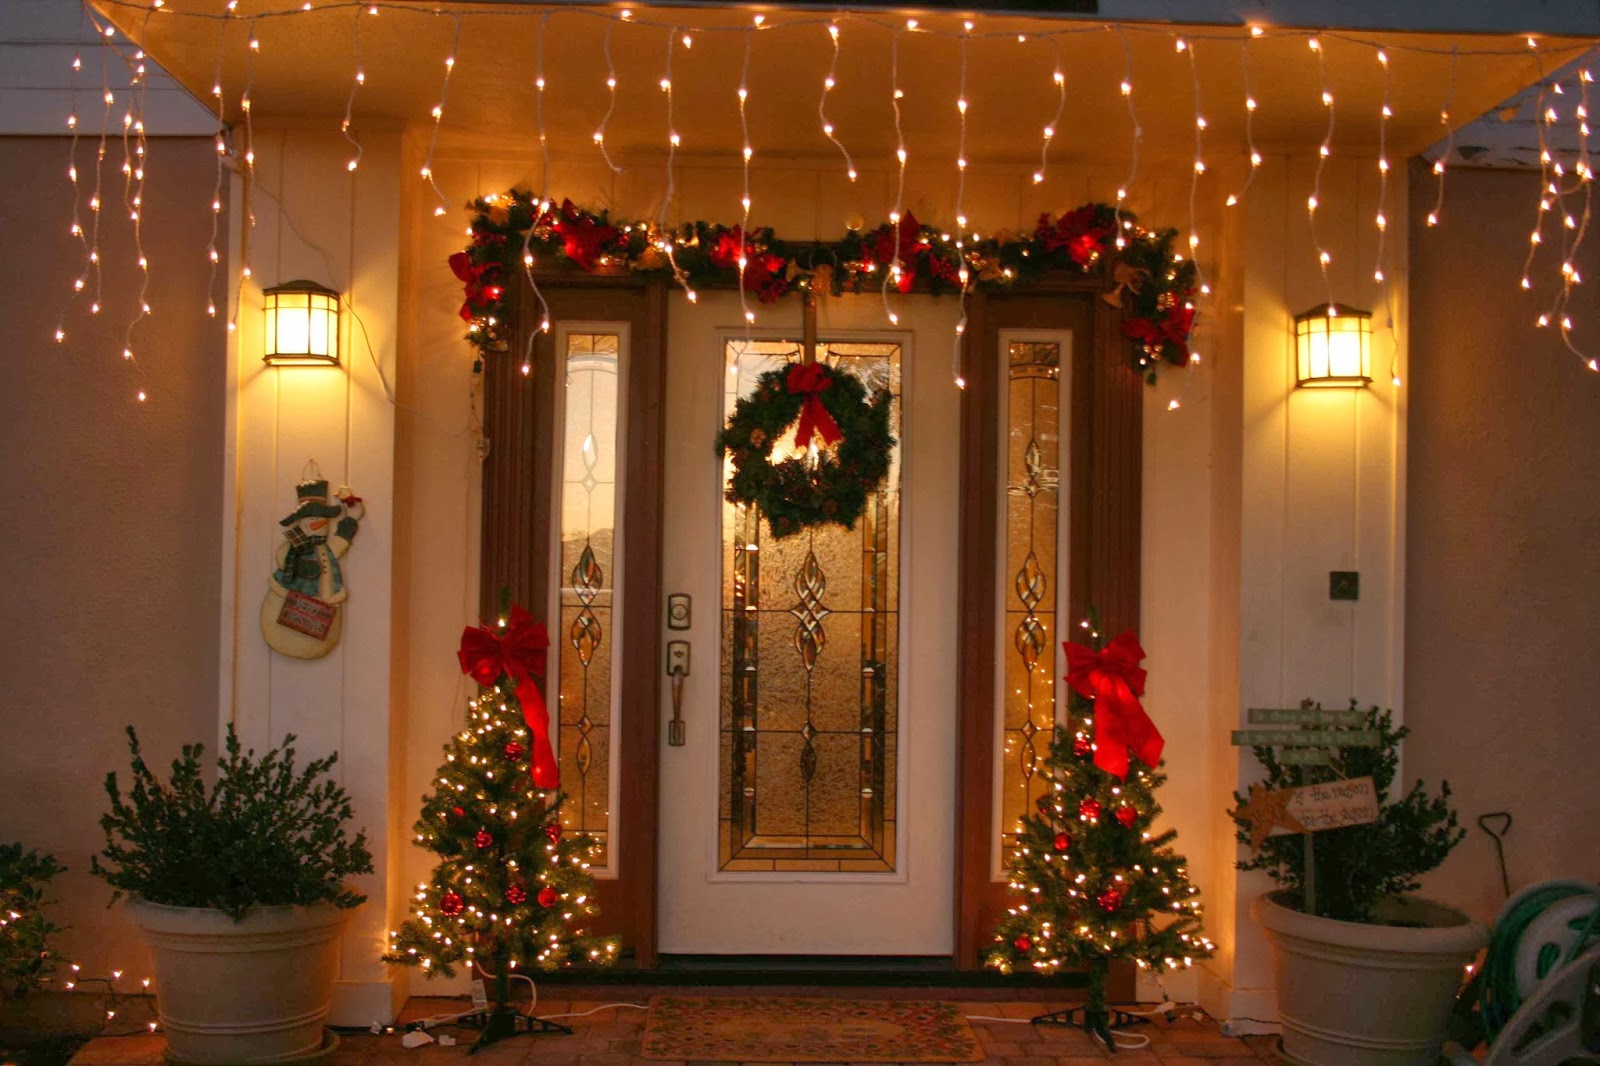 Luxurious Christmas Tree Decorating Ideas For School Decor Decoration Ideas Luxury Elegant Christmas Door Decorating Ideas With